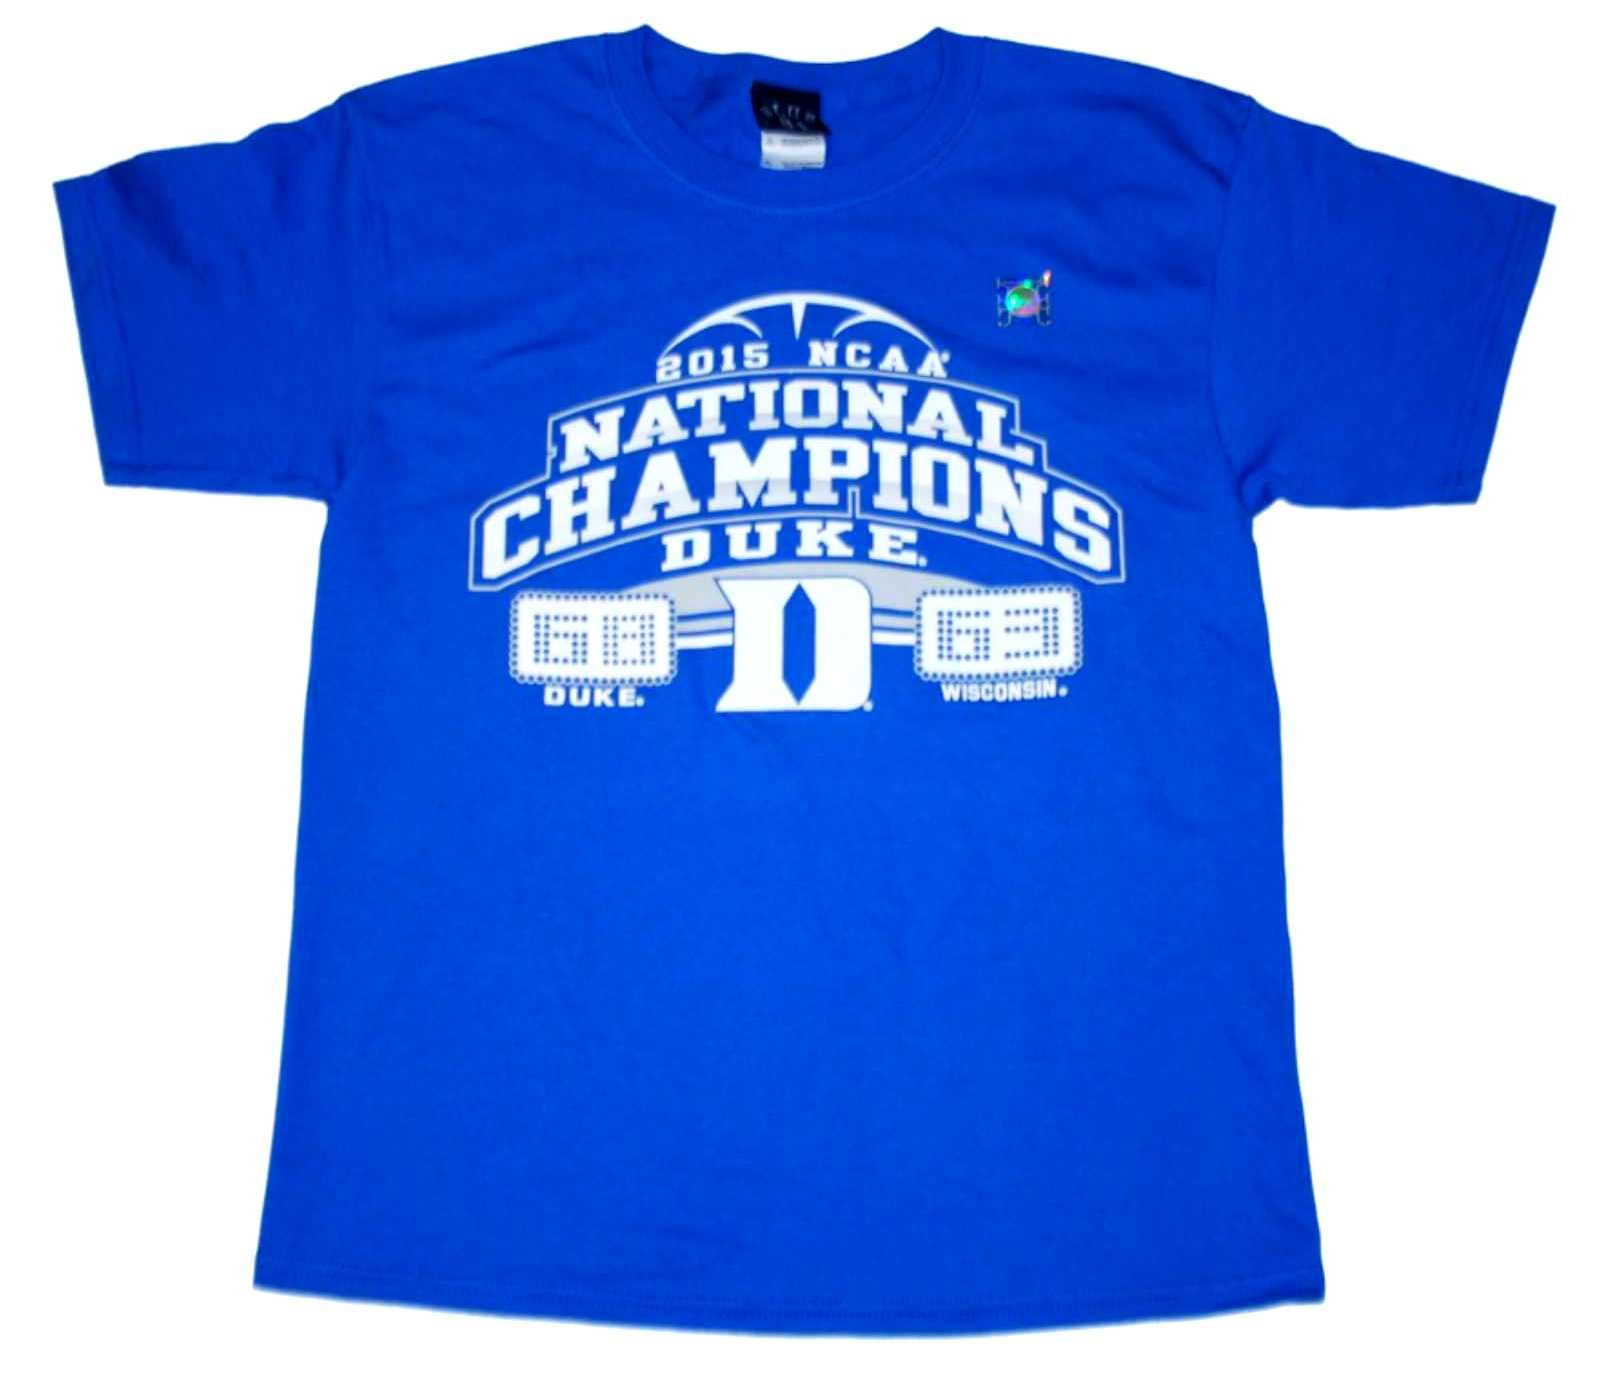 5b7a75d1a4c0 Duke Blue Devils 2015 College Basketball National Champions Youth Short  Sleeve Final Score T-Shirt